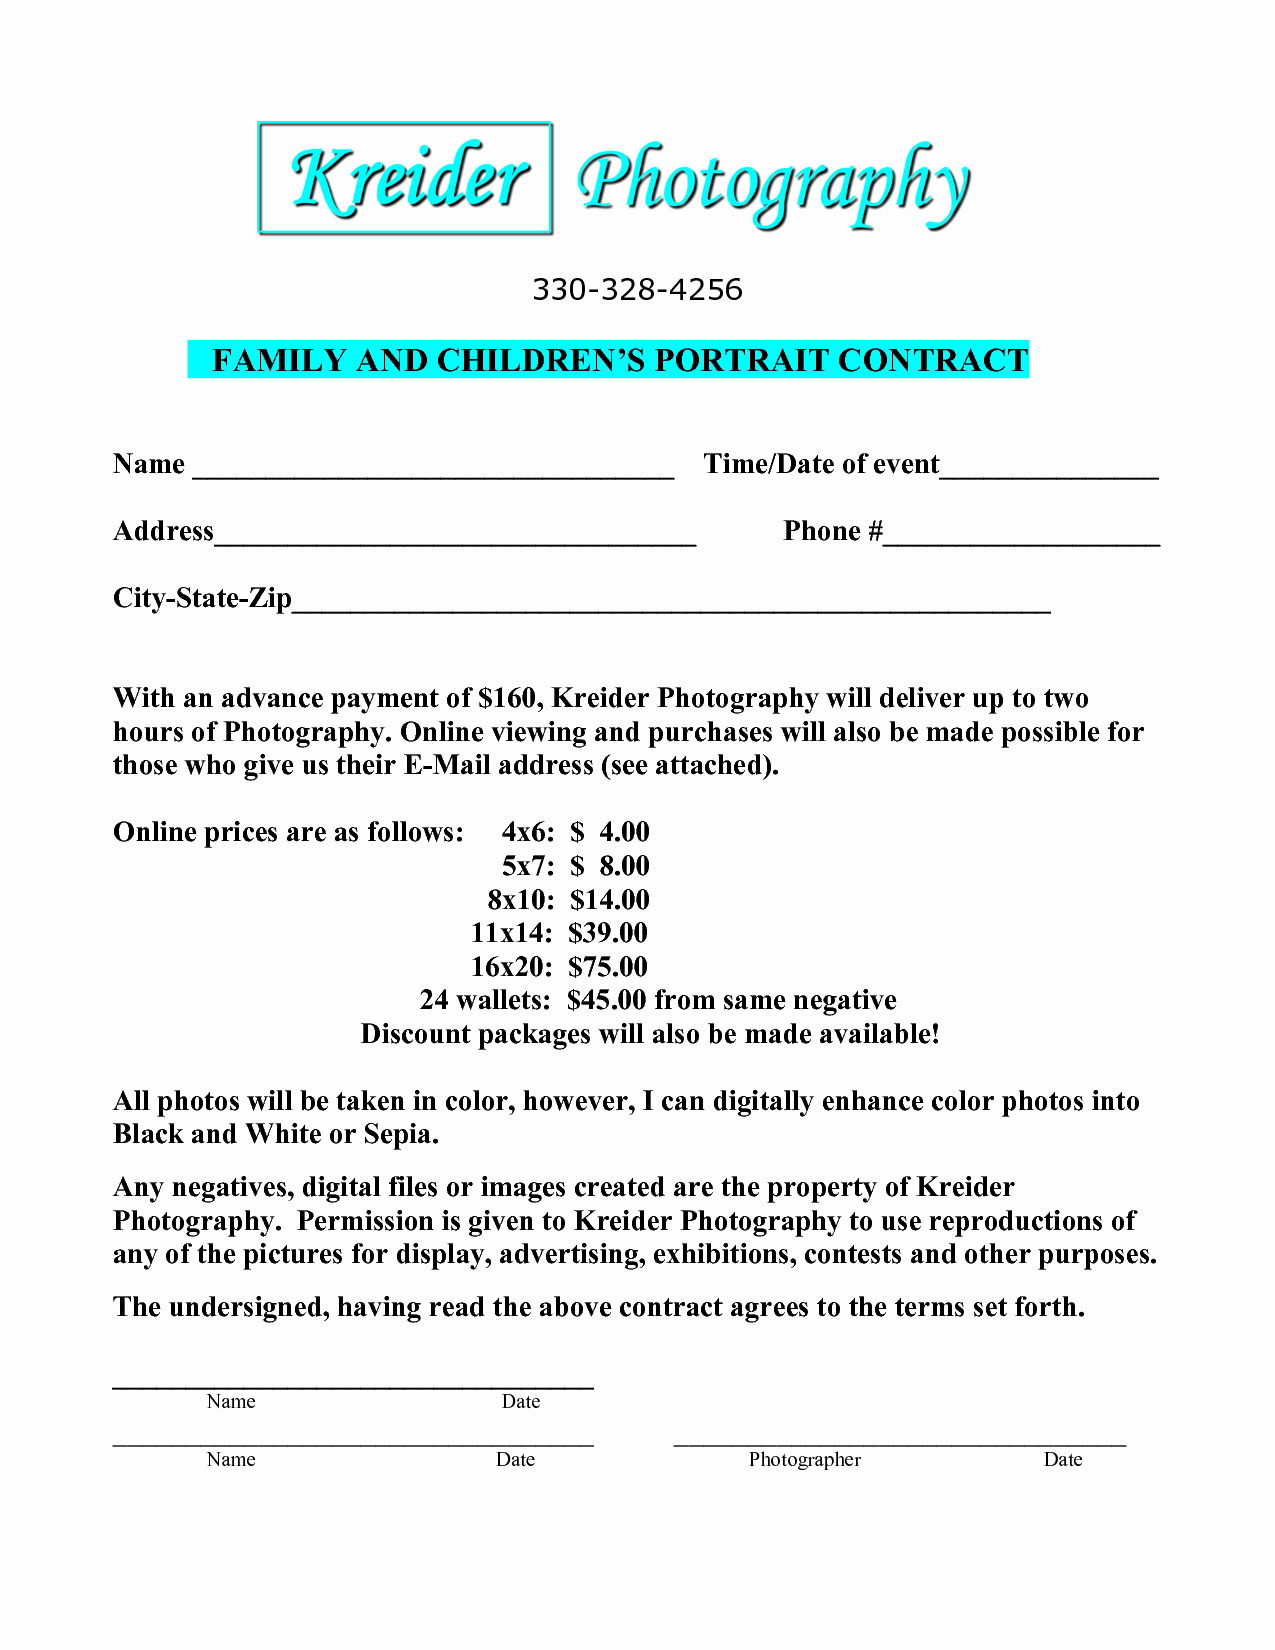 Portrait Photography Contract Template Elegant Portrait Graphy Contract Template Free Printable